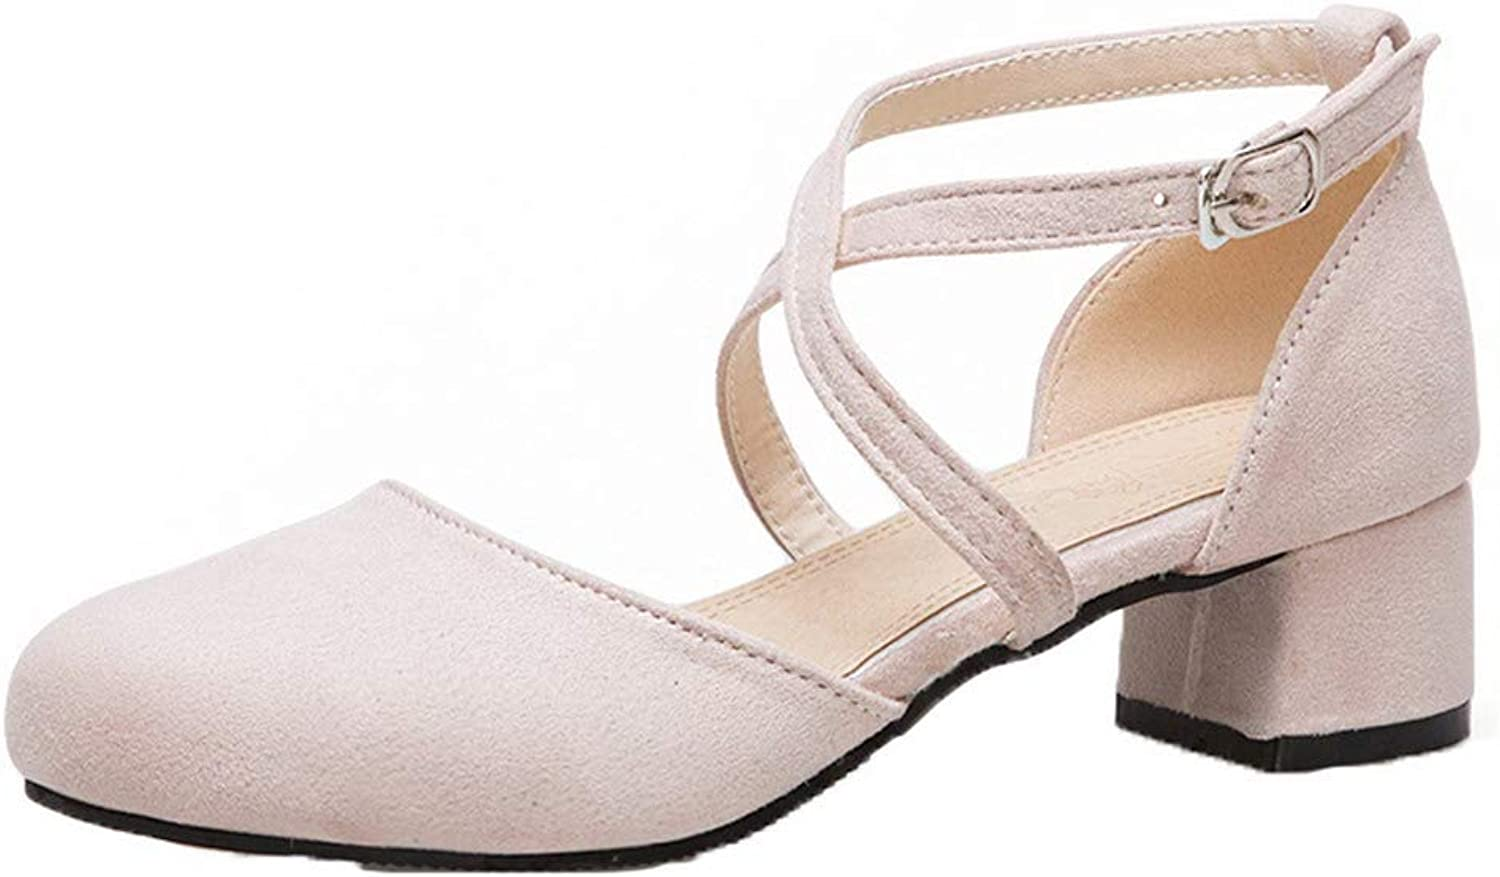 AmoonyFashion Women's Solid Frosted Low-Heels Buckle Closed-Toe Sandals, BUTLT007752